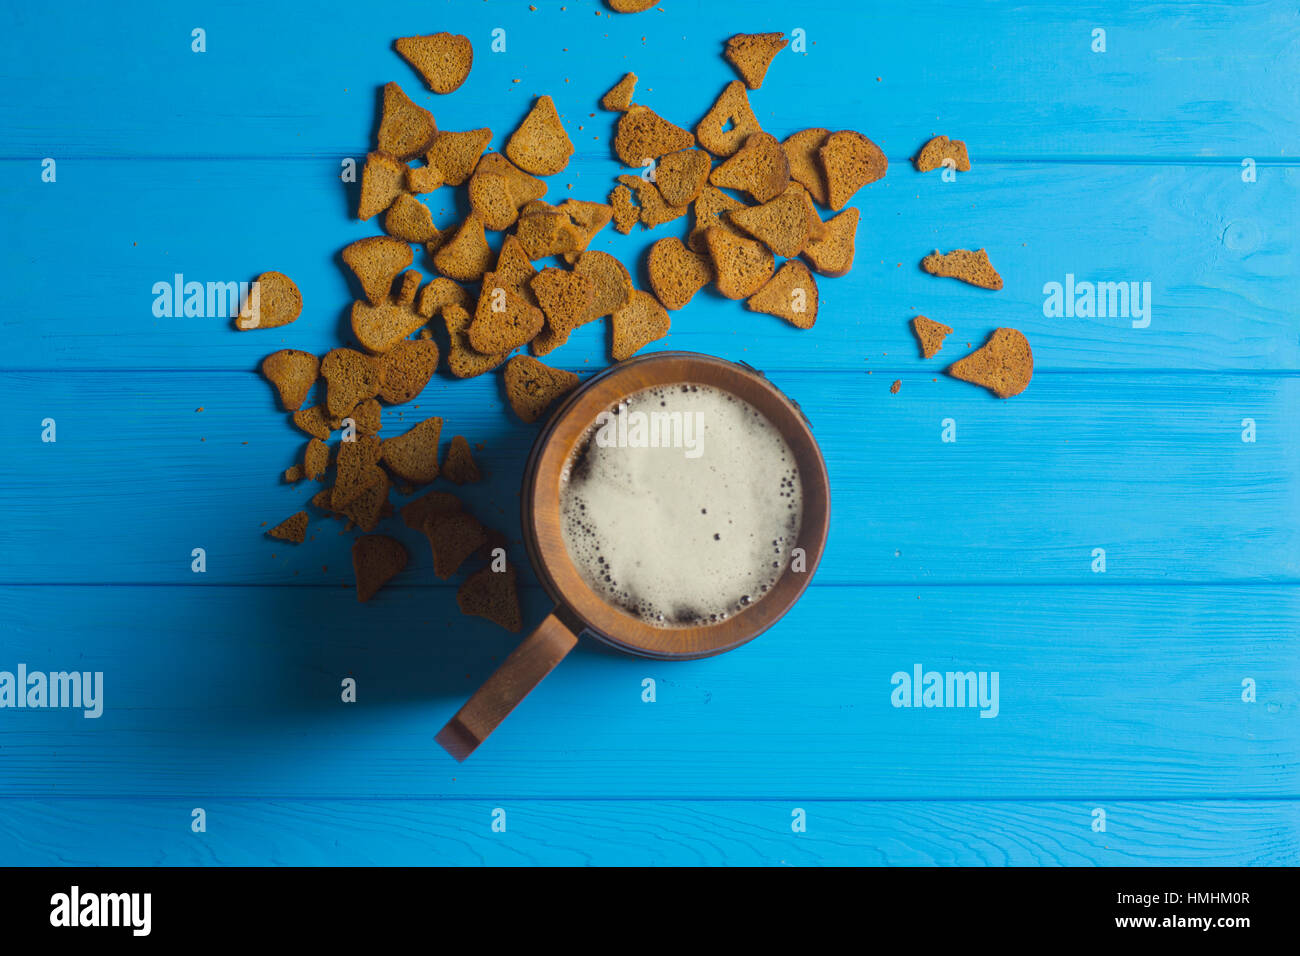 Beer Mug and Dried Bread on Wooden Background Stock Photo